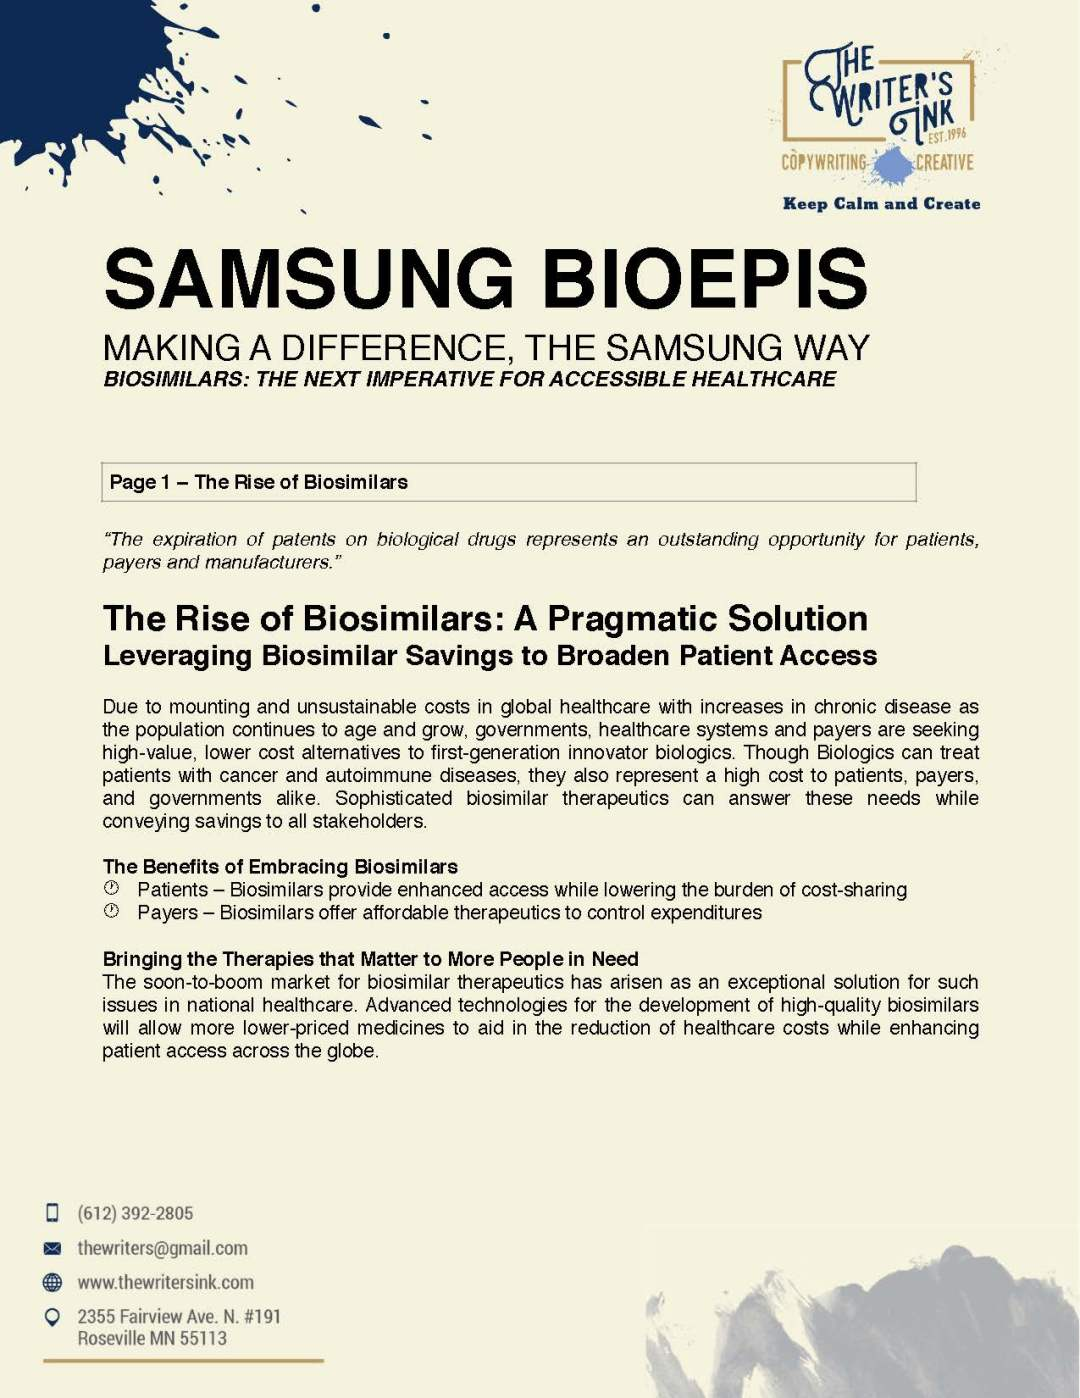 samsung-bioepis_making-a-difference_page_1